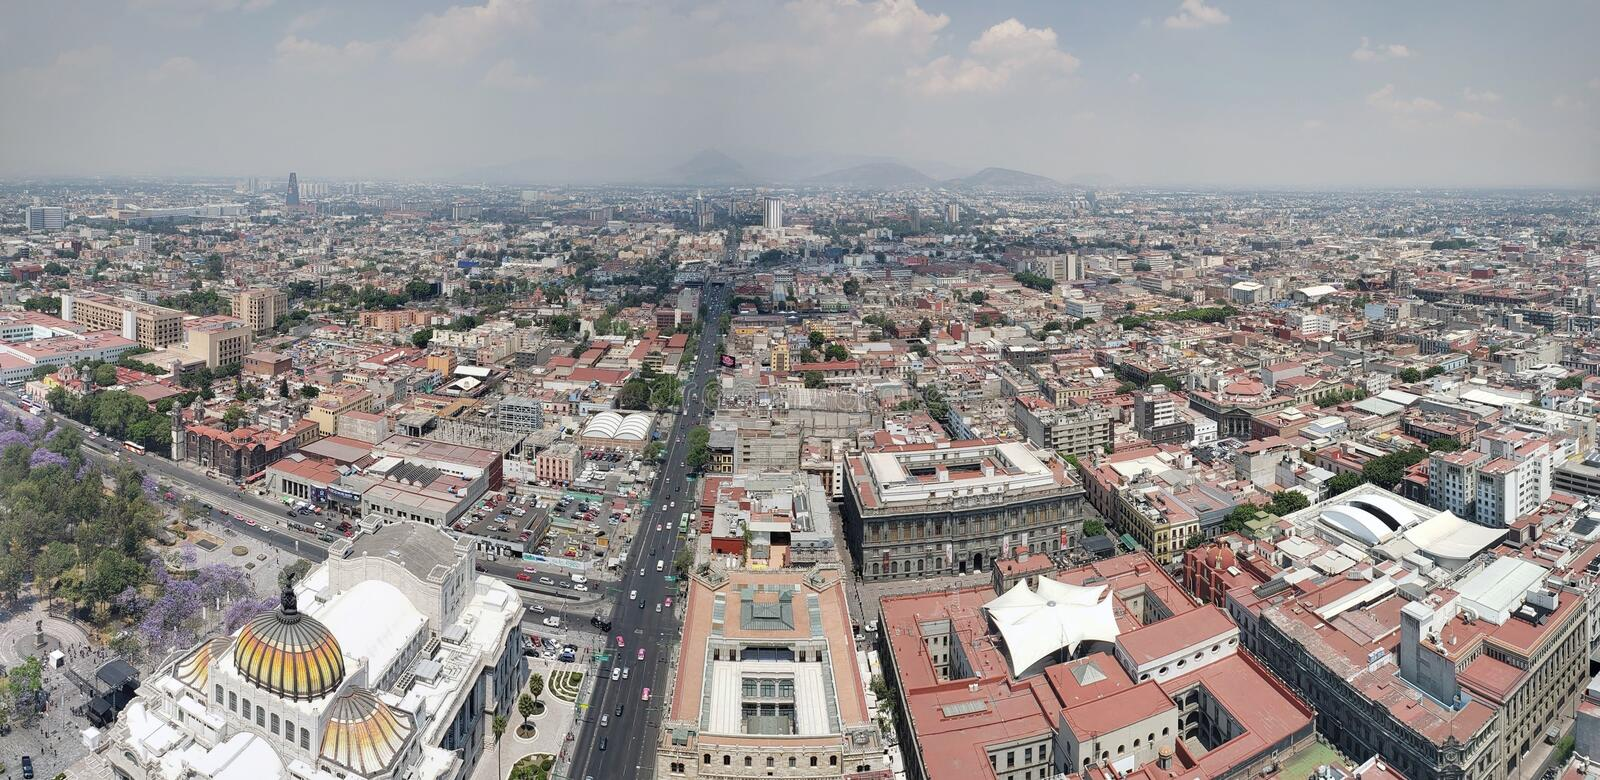 aerial view of Mexico City in urban zone royalty free stock image